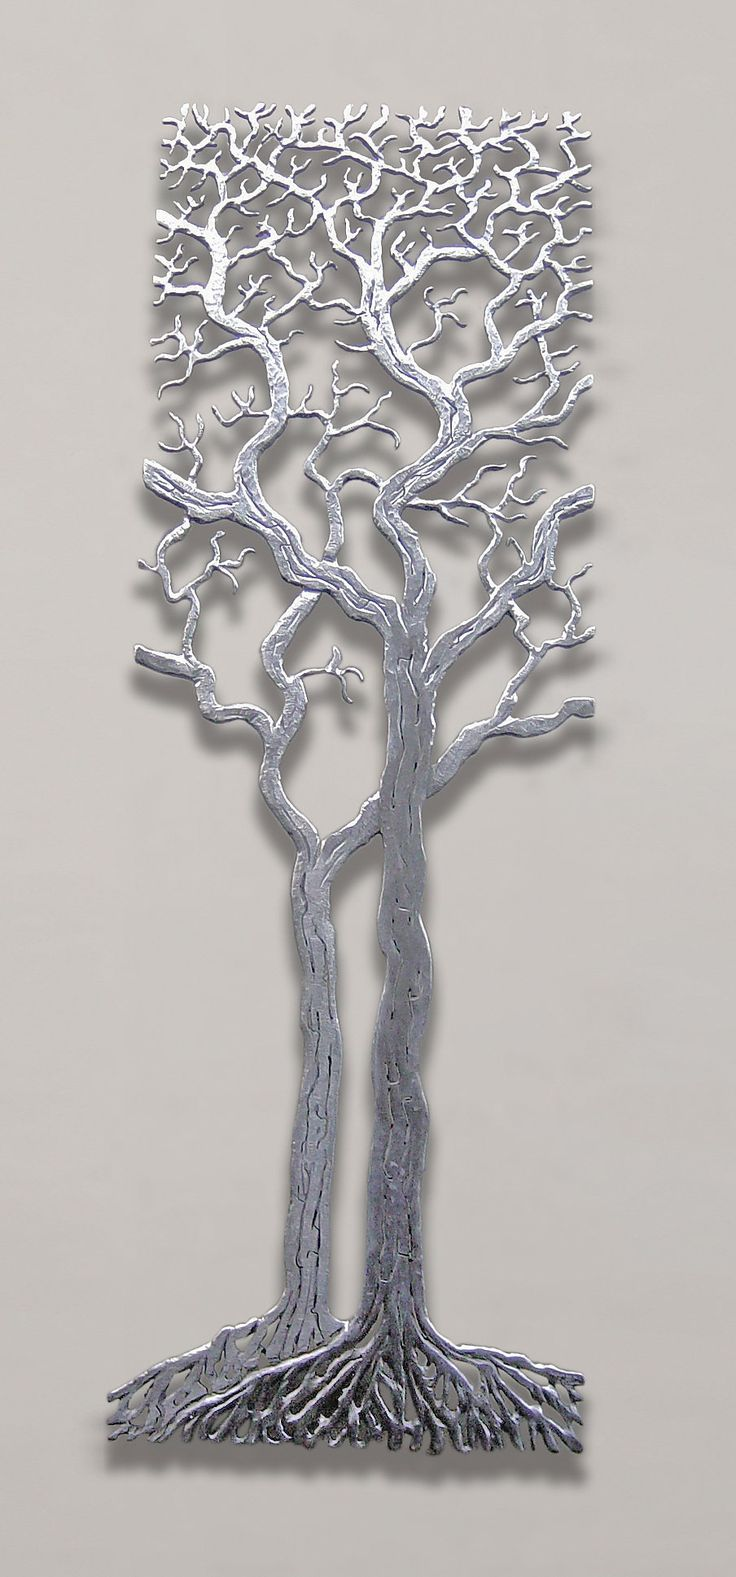 centuries tree bernard collin metal wall art artful home: tree scene metal wall art